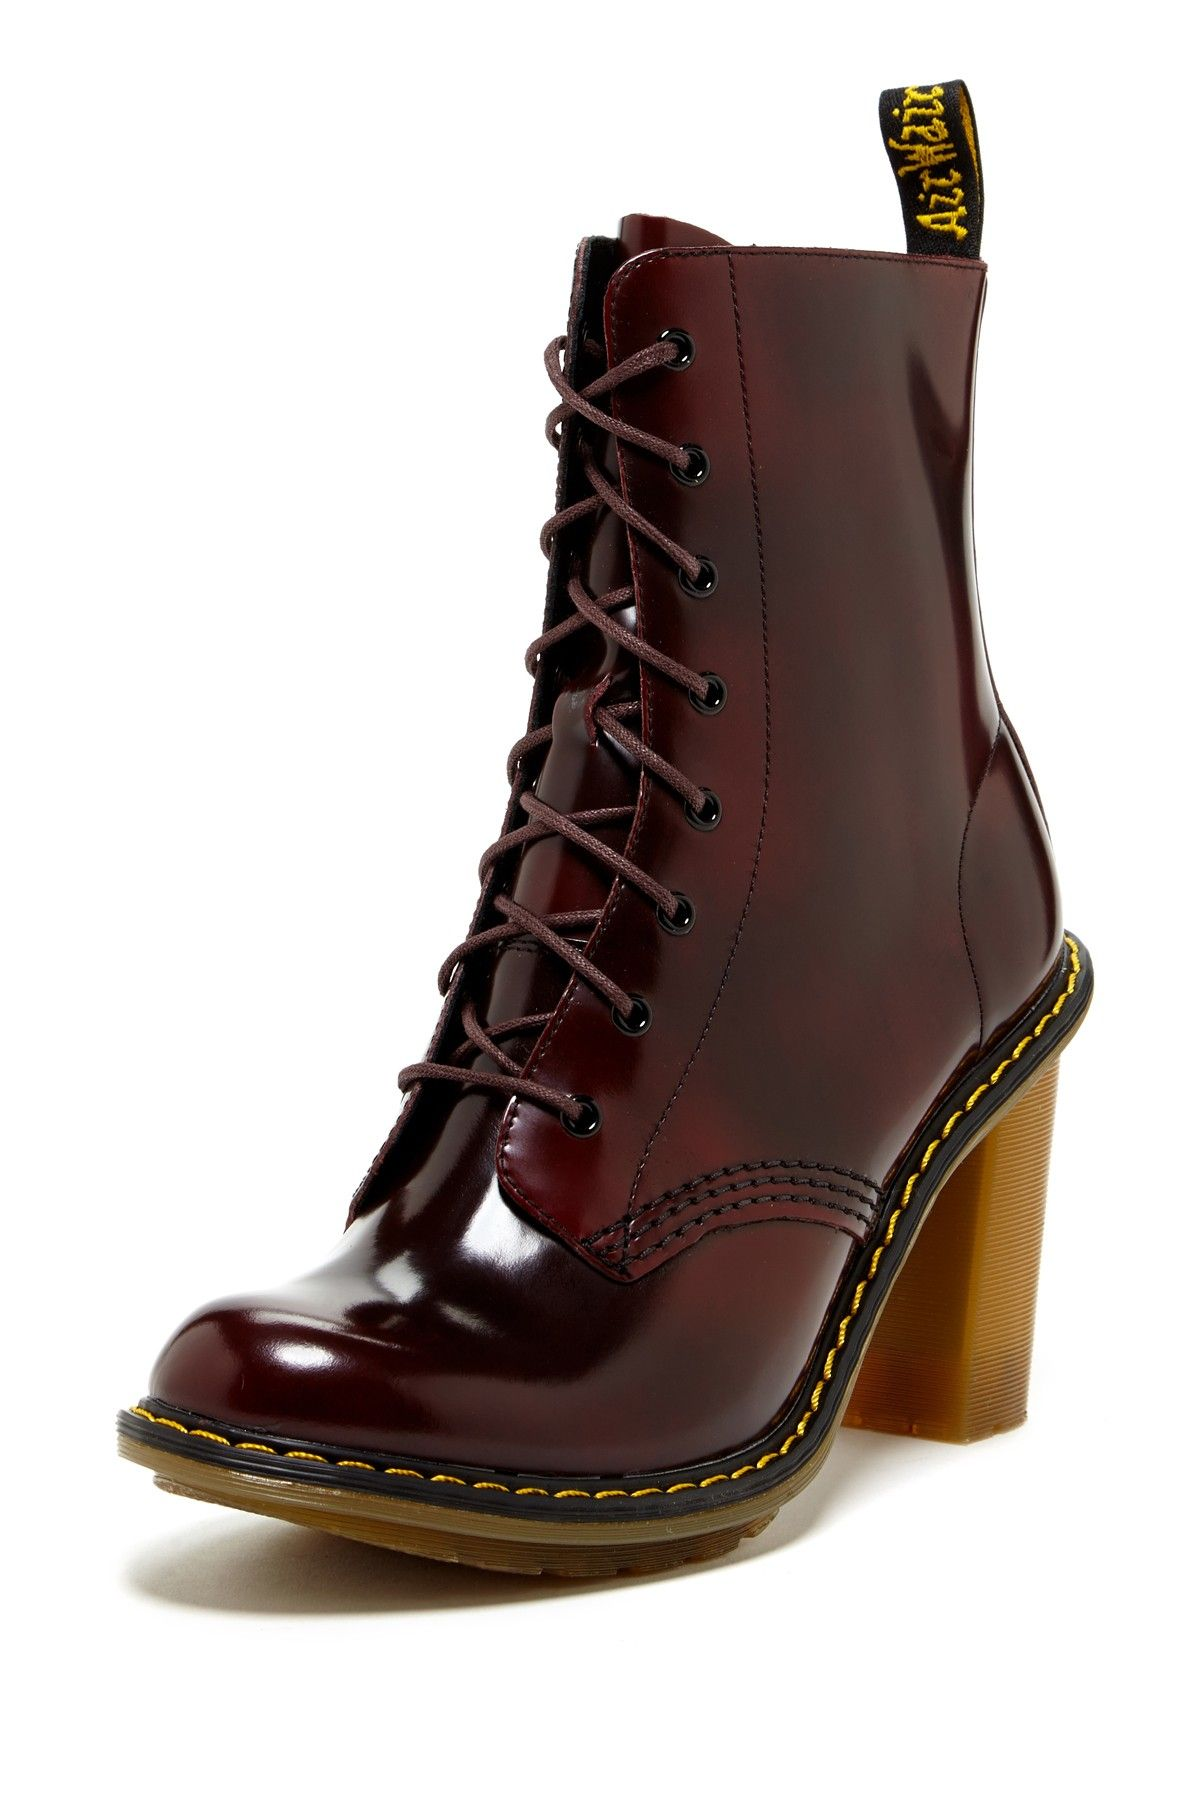 tienda del reino unido comprar popular lujo Dr.+Martens+Sadie+High+Heel+Lace-Up+Boot+by+Dr.+Martens+on+@ ...